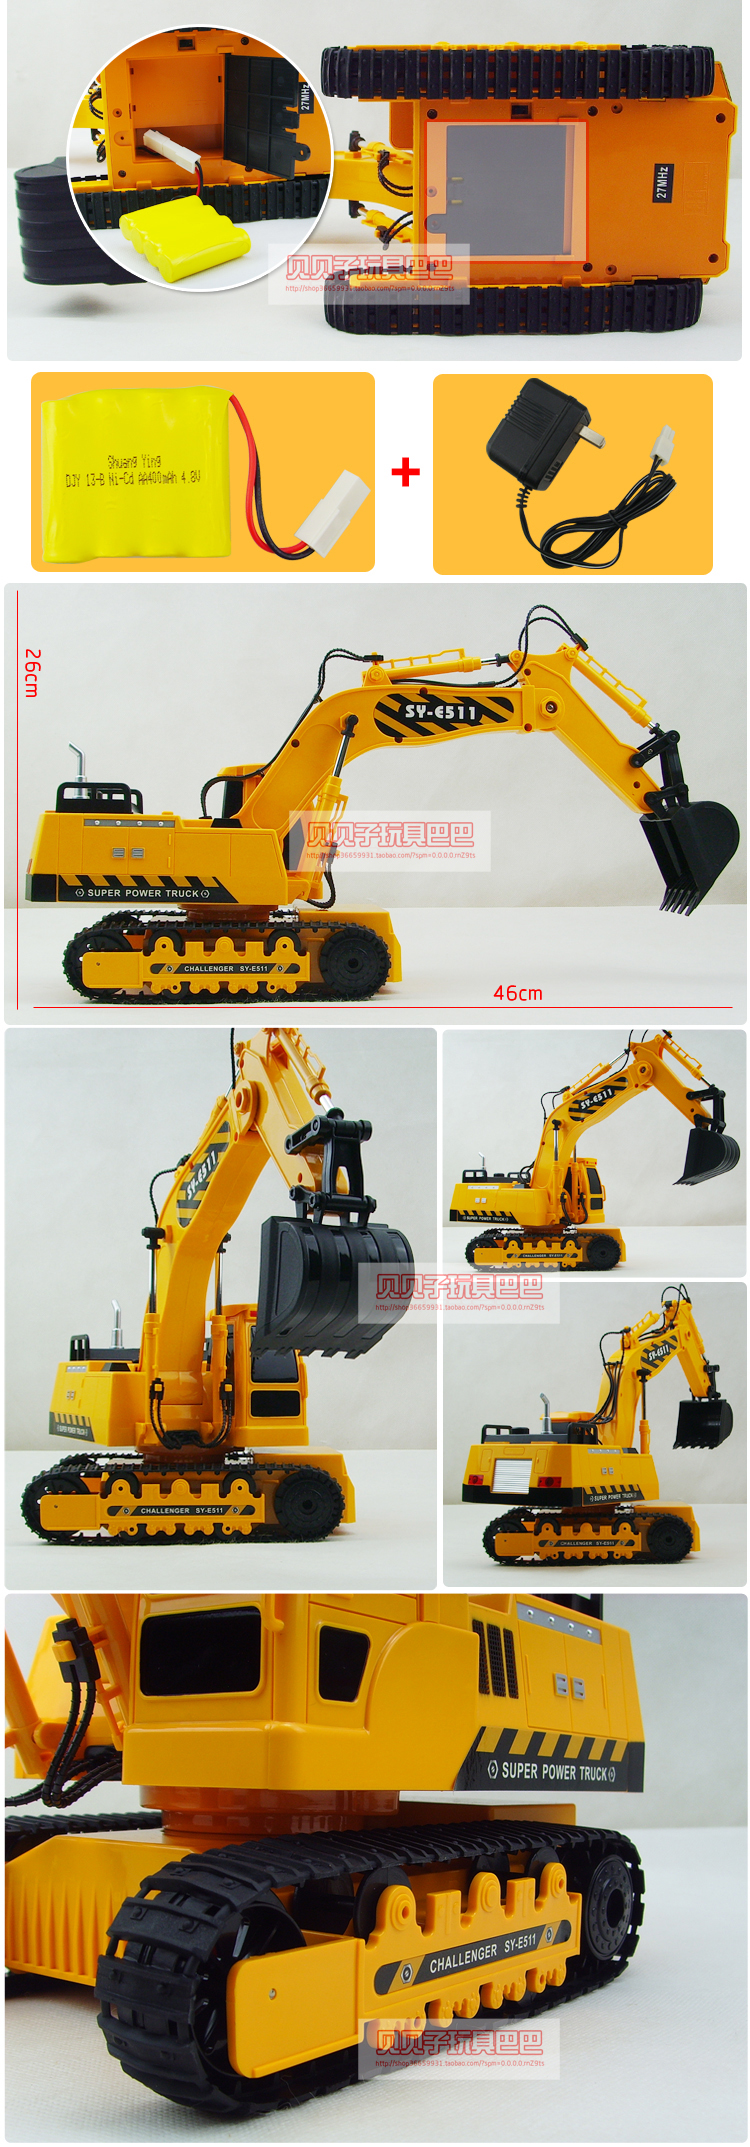 Exquisite Excavators